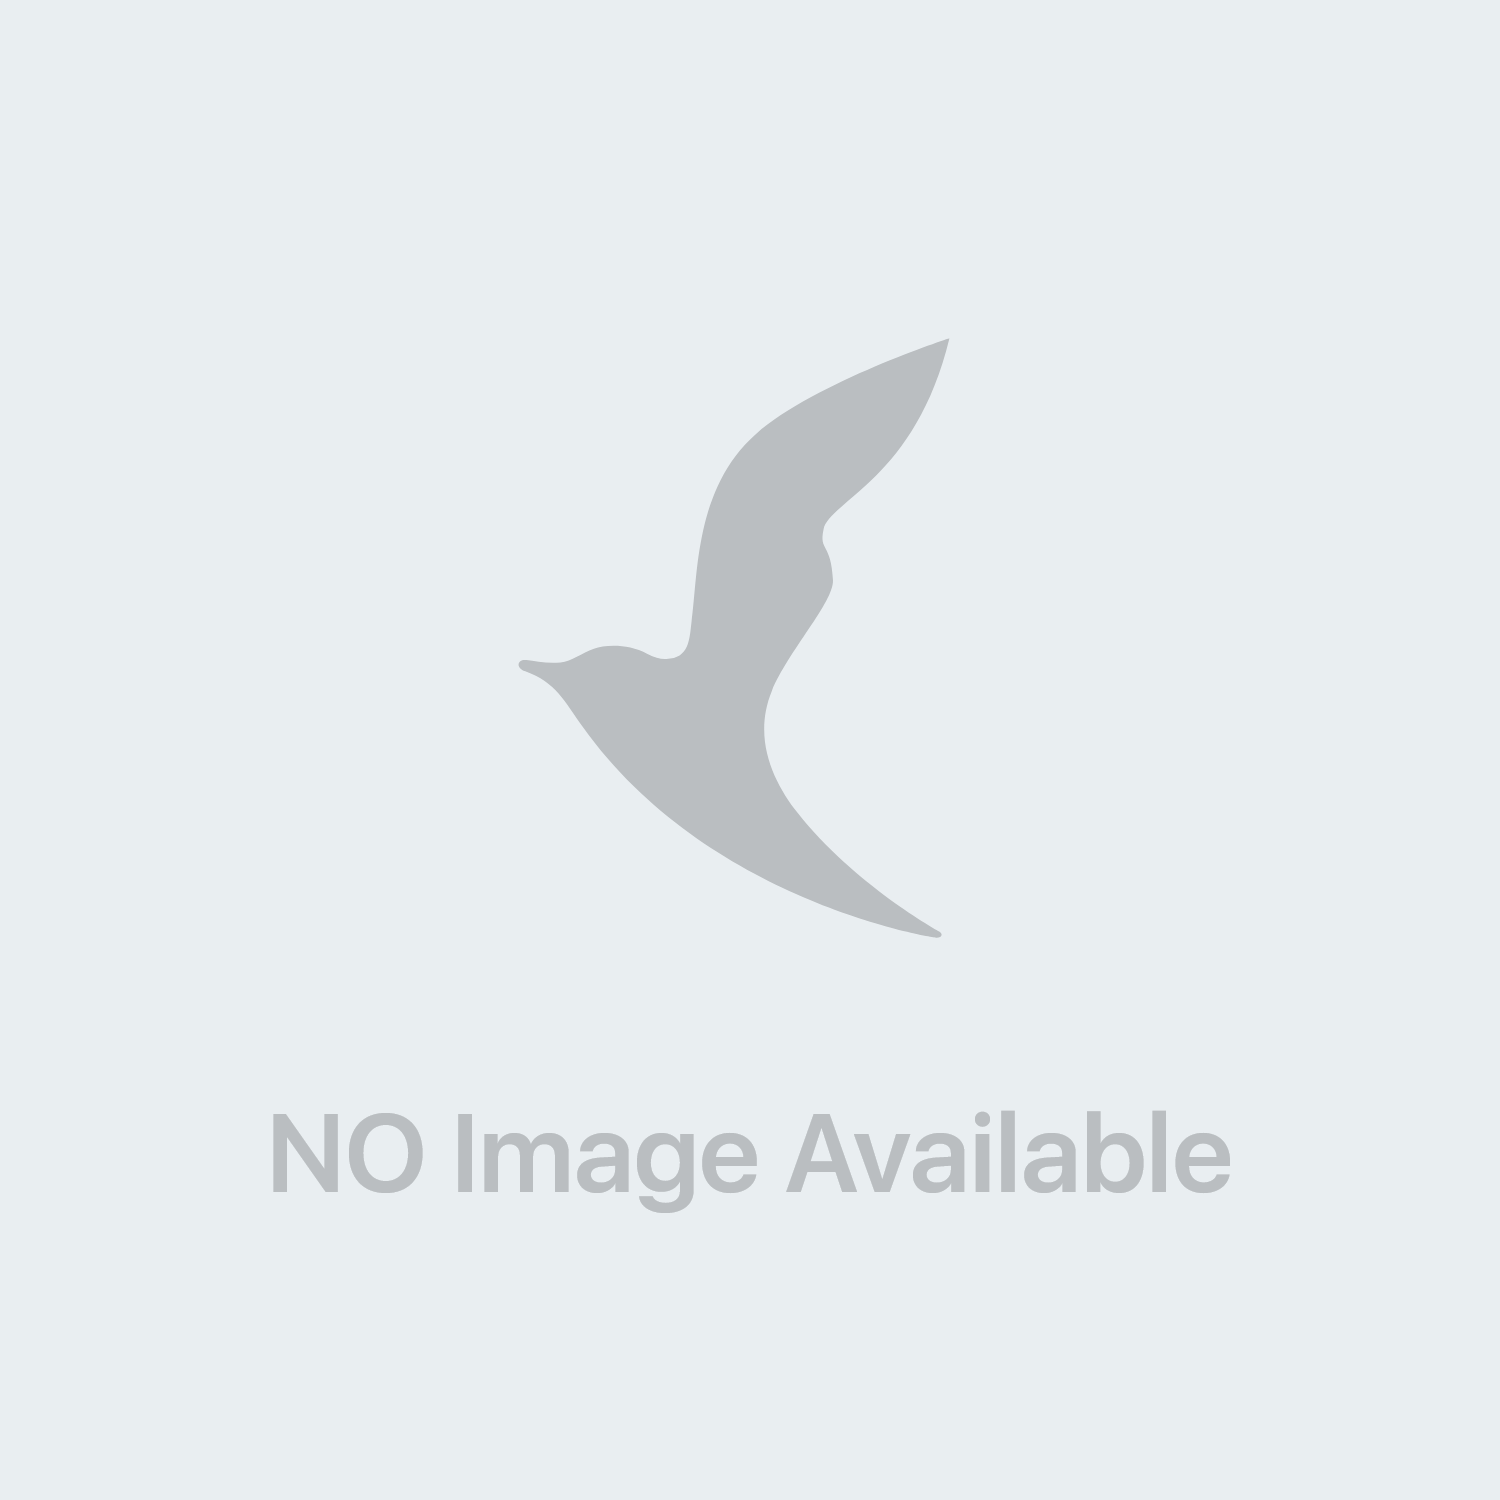 Teknofarma Pet Remedy Diffusore Antistress Per Animali + 1 Flacone 40 ml